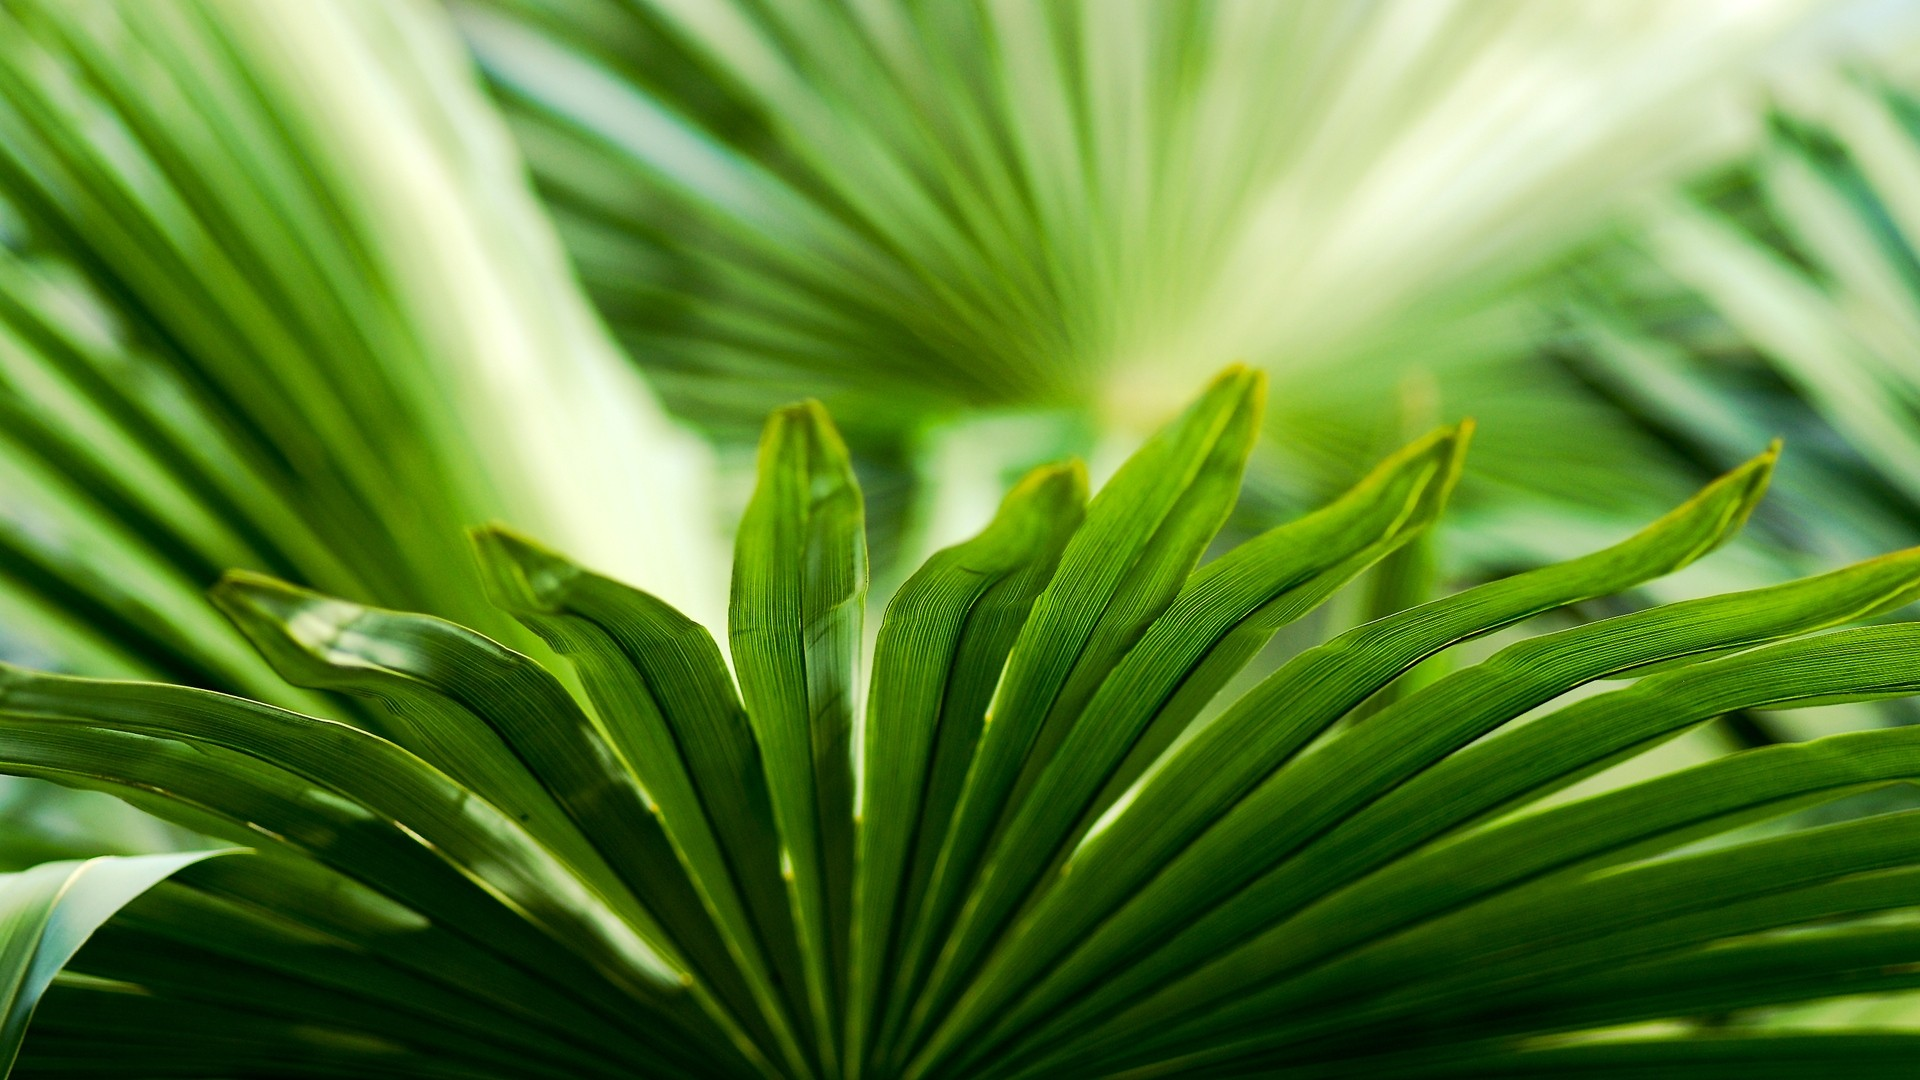 Tropical Leaf Wallpapers 28 Images Nature Category Tropical leaves wallpaper categories : tropical leaf wallpapers 28 images